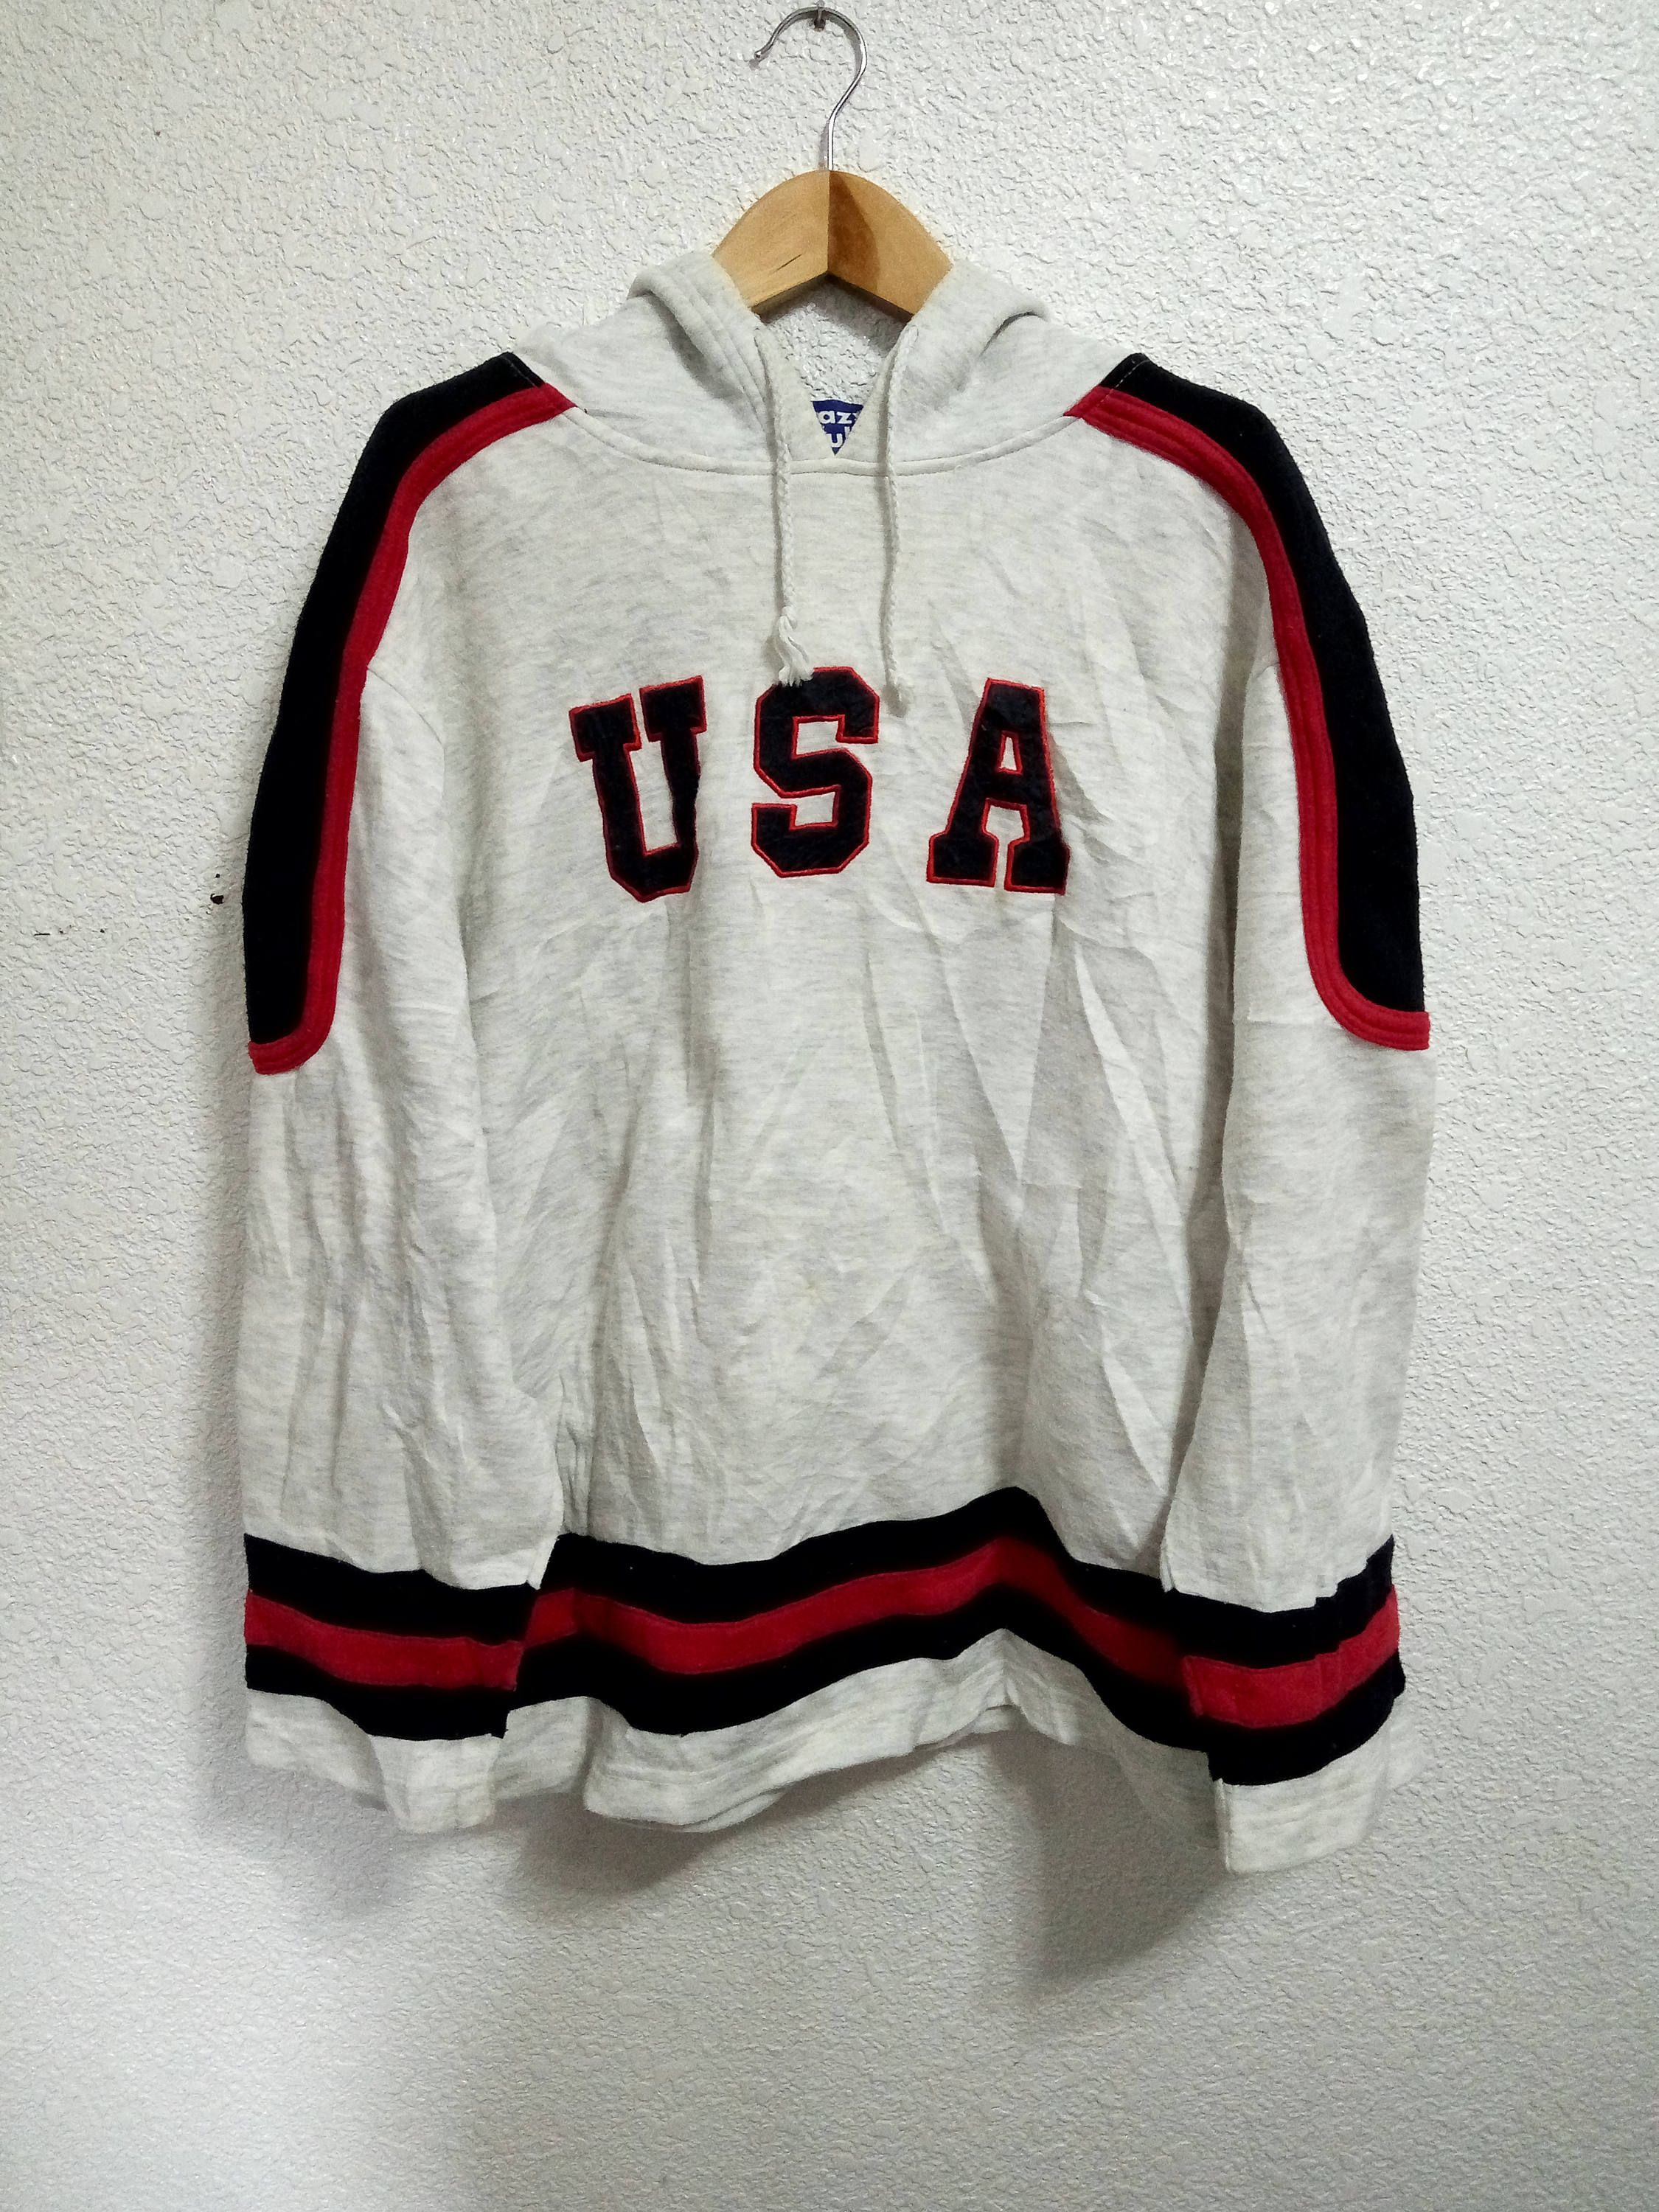 04b8d70c9e Sale Vintage Crazy Club USA Big Logo Sweater Hoodies by ...